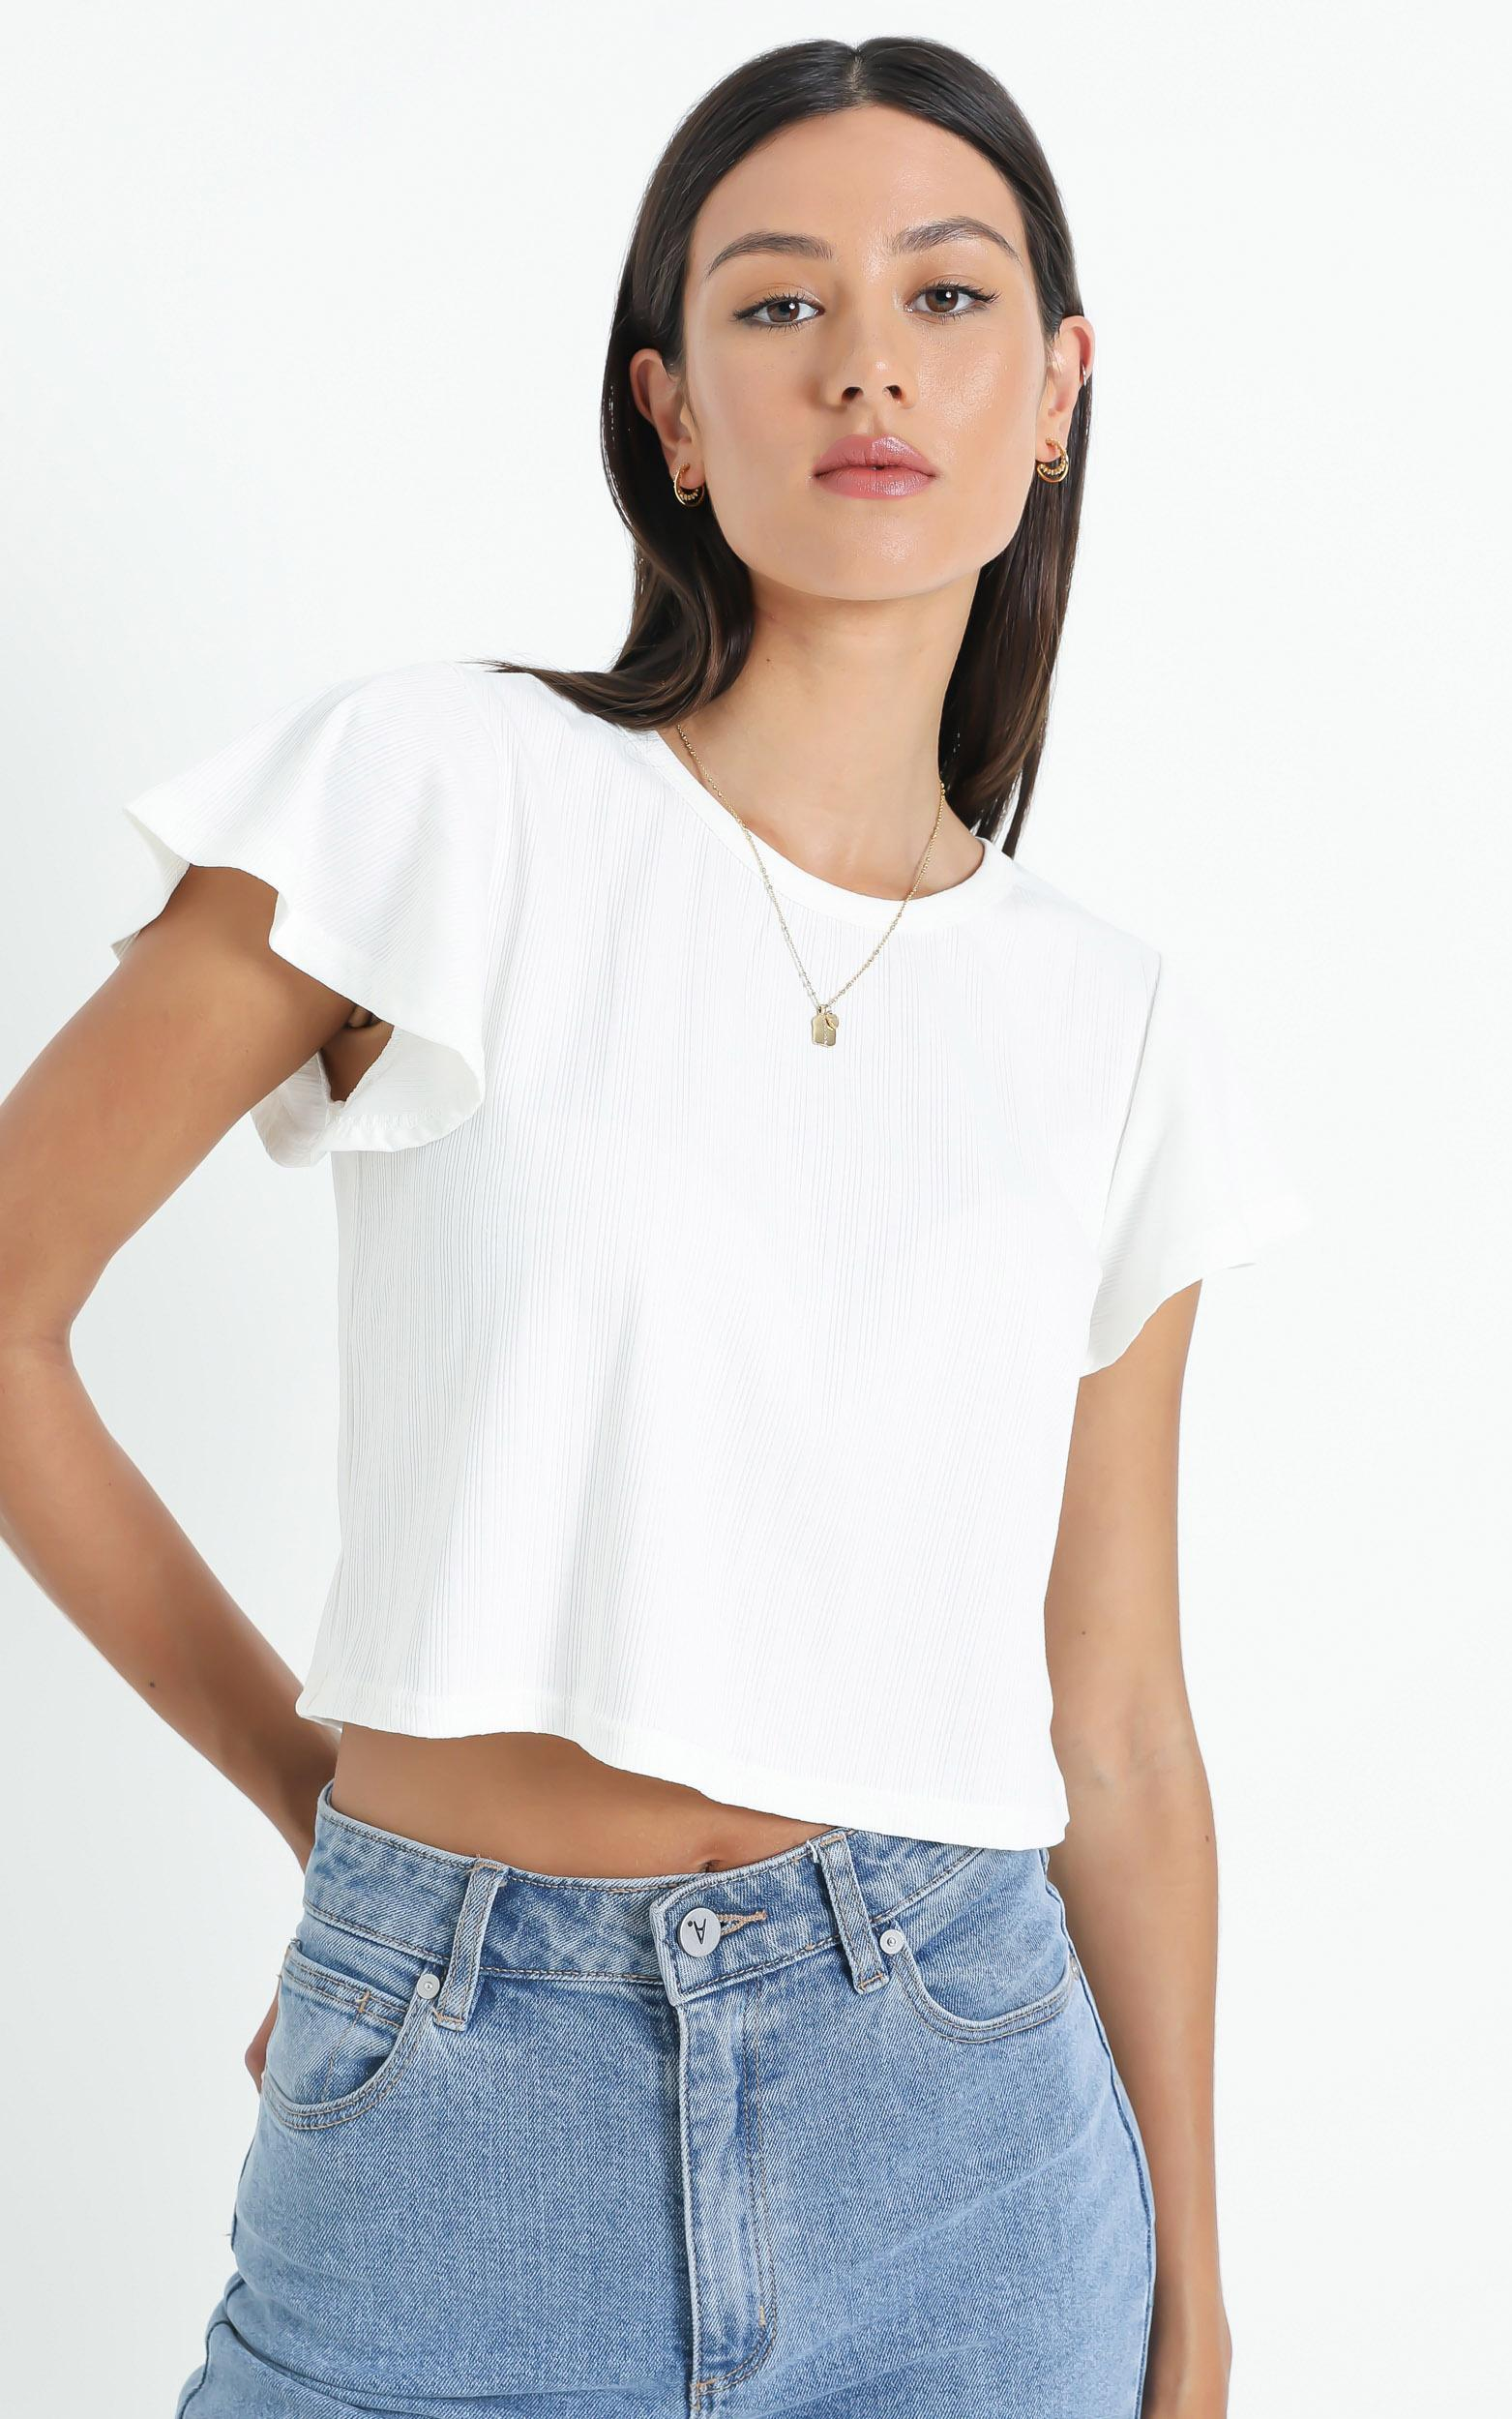 Broome Top in White - 06, WHT2, hi-res image number null